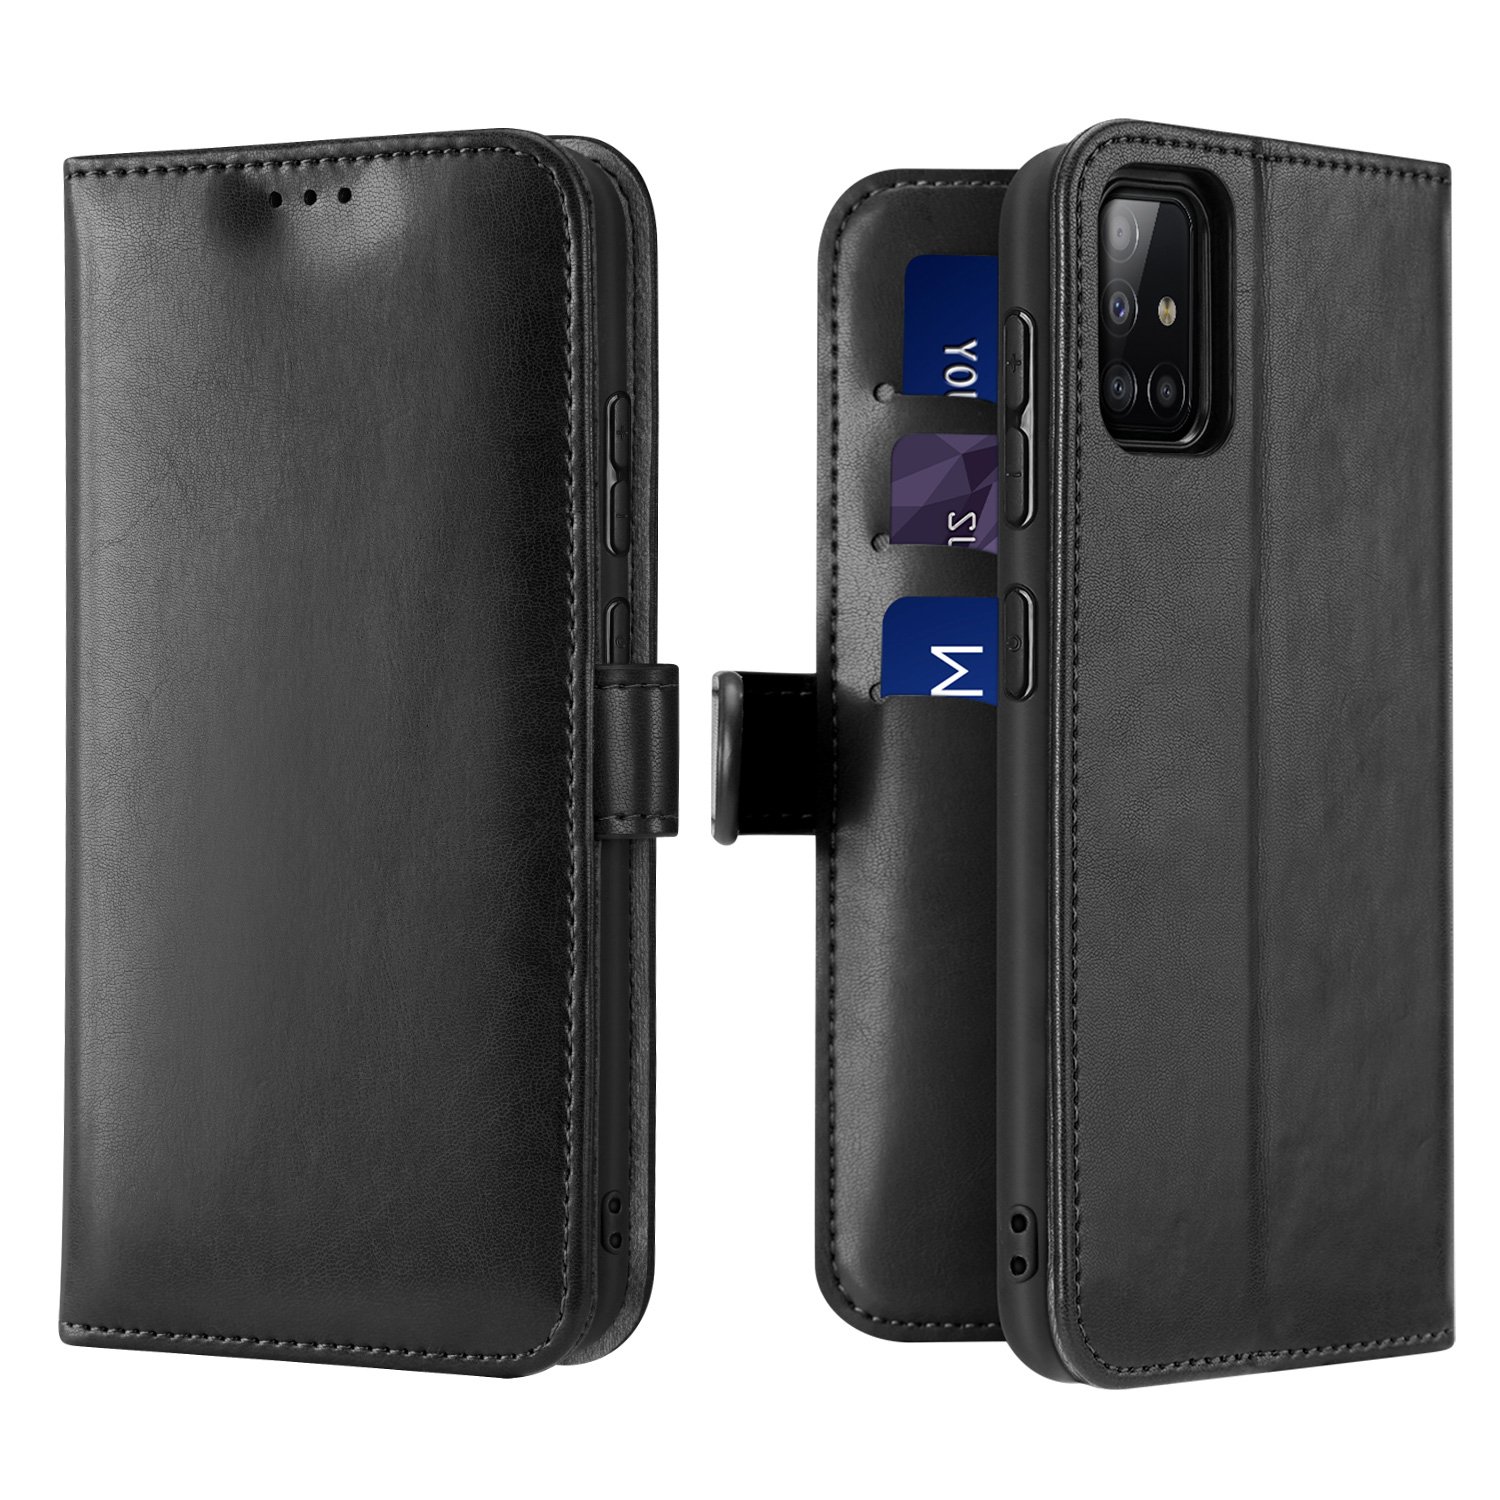 DUX DUCIS For Samsung A51/A71 Fall Resistant Mobile Phone Cover Magnetic Leather Protective Case Bracket with 3 Cards Slot black_Samsung A71